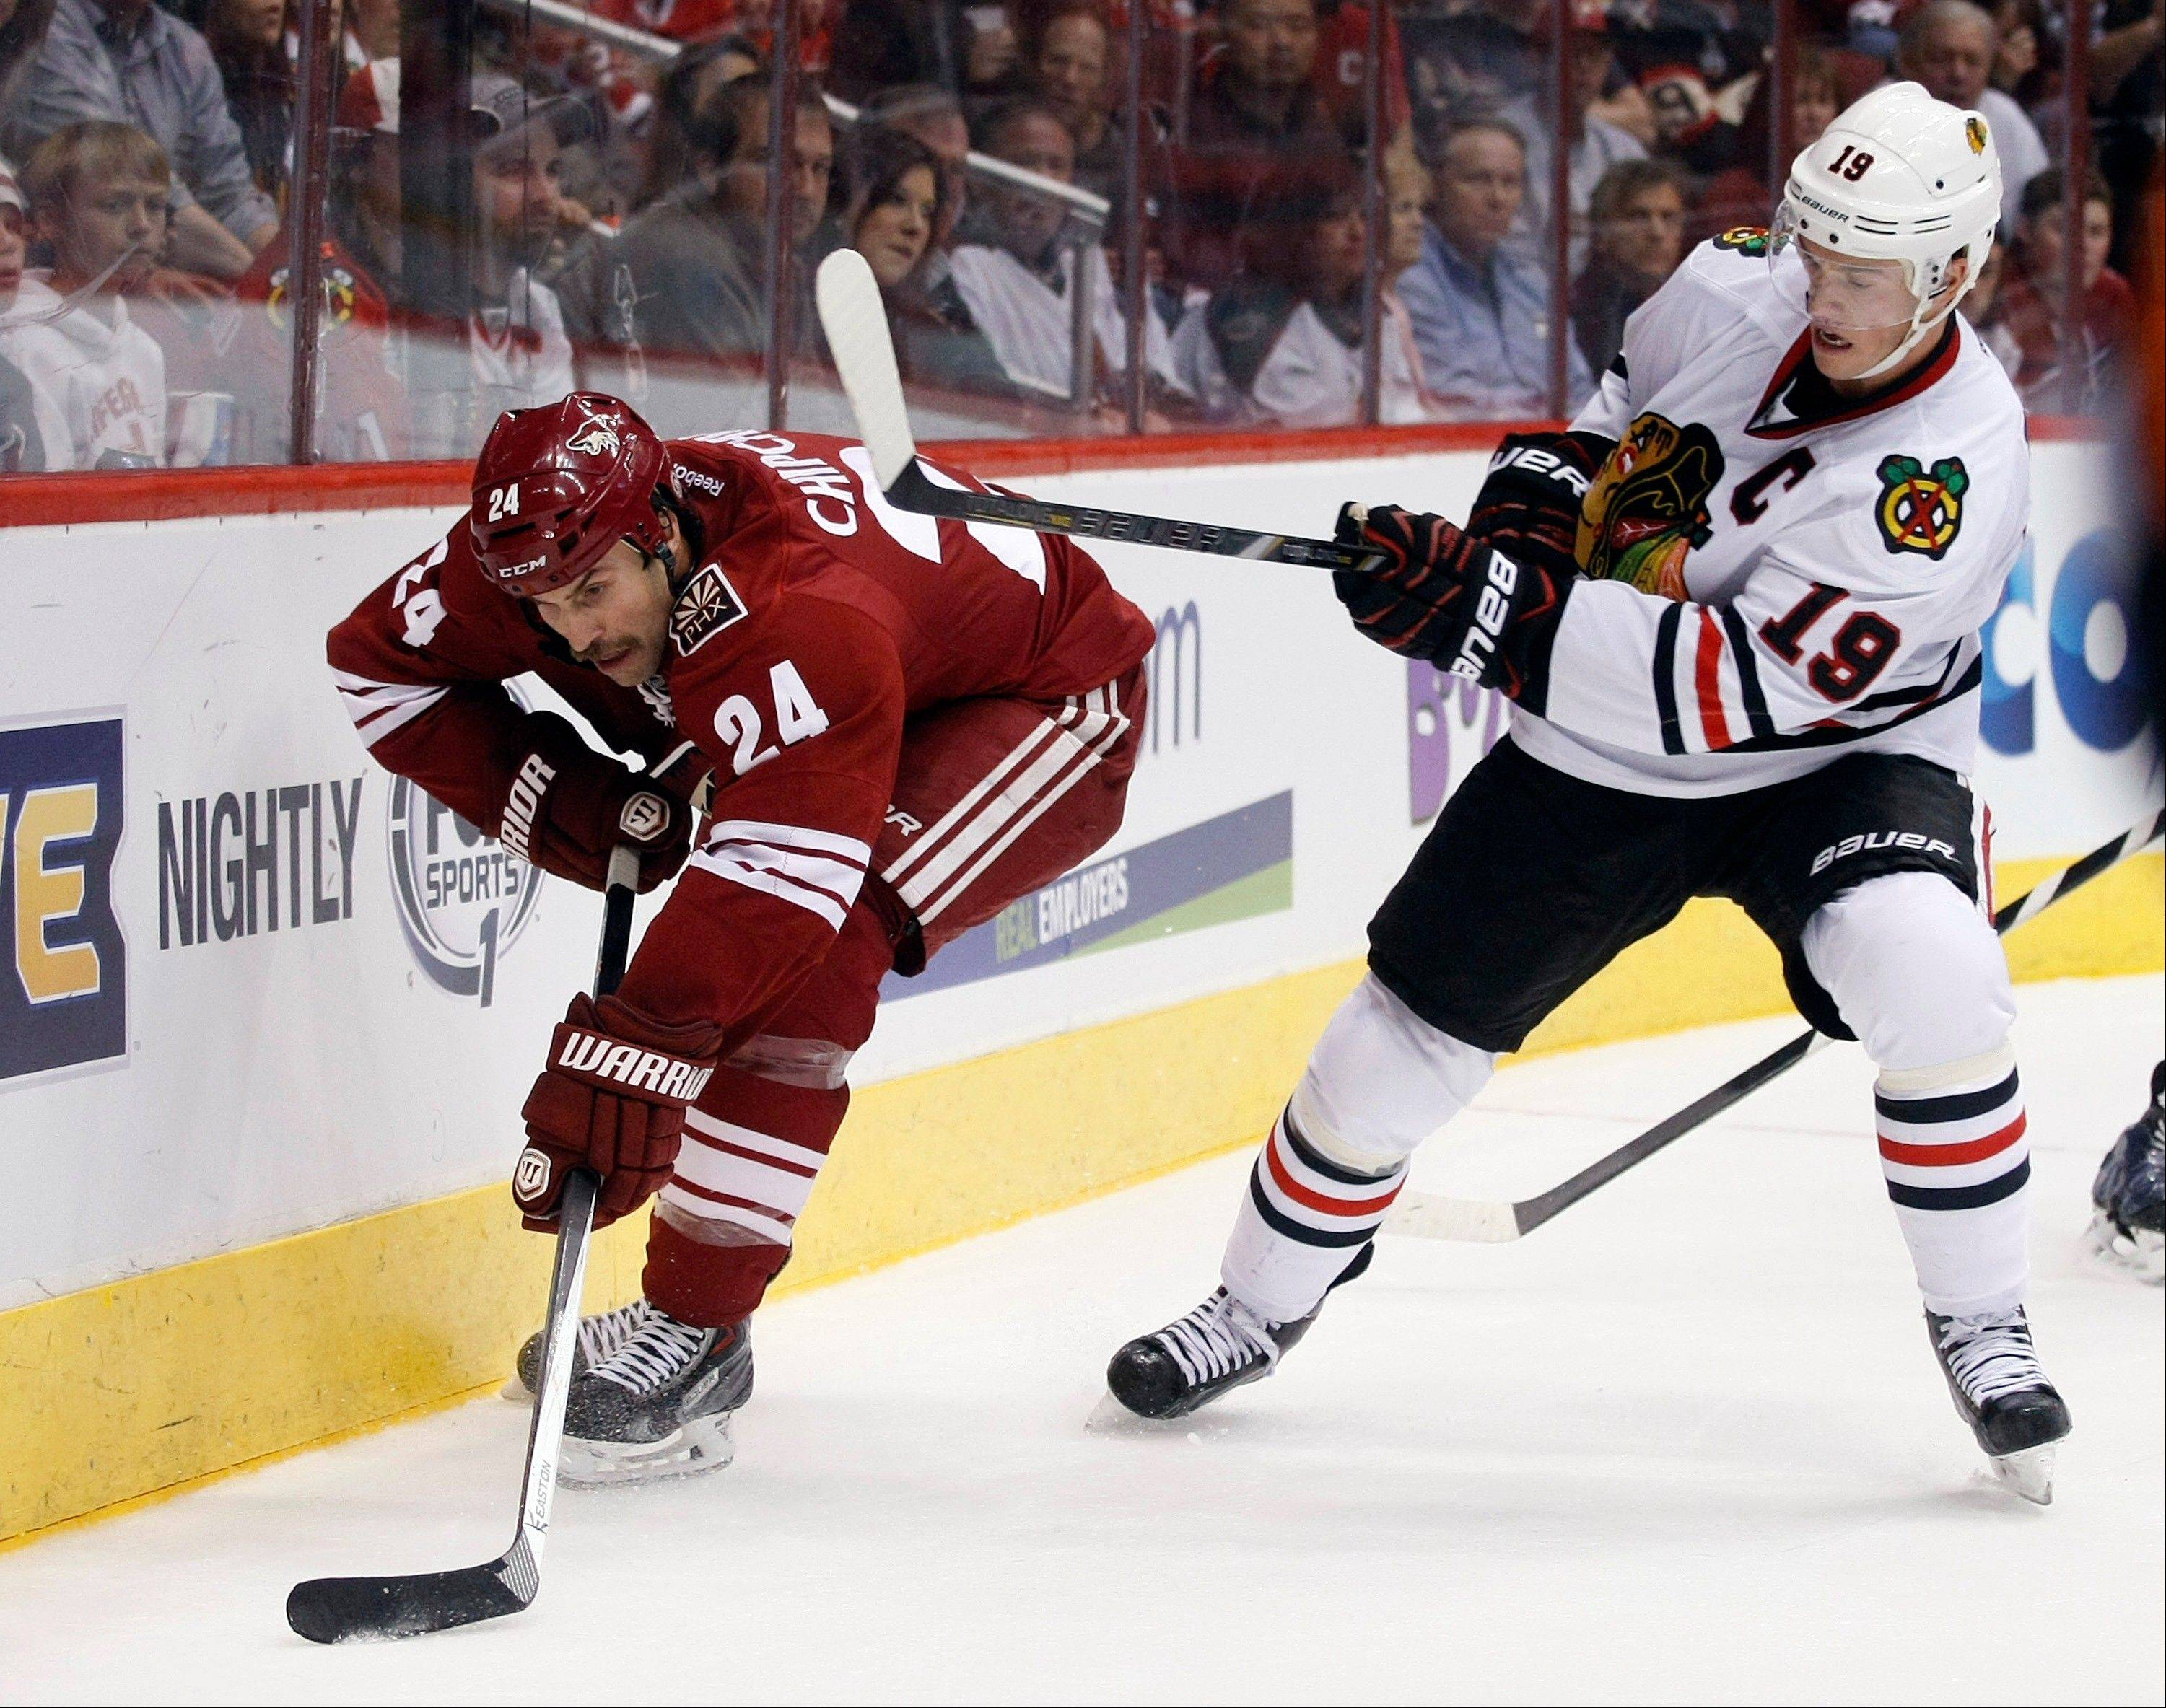 The Blackhawks� Jonathan Toews battles the Coyotes� Kyle Chipchura for the puck in the second period Saturday night.